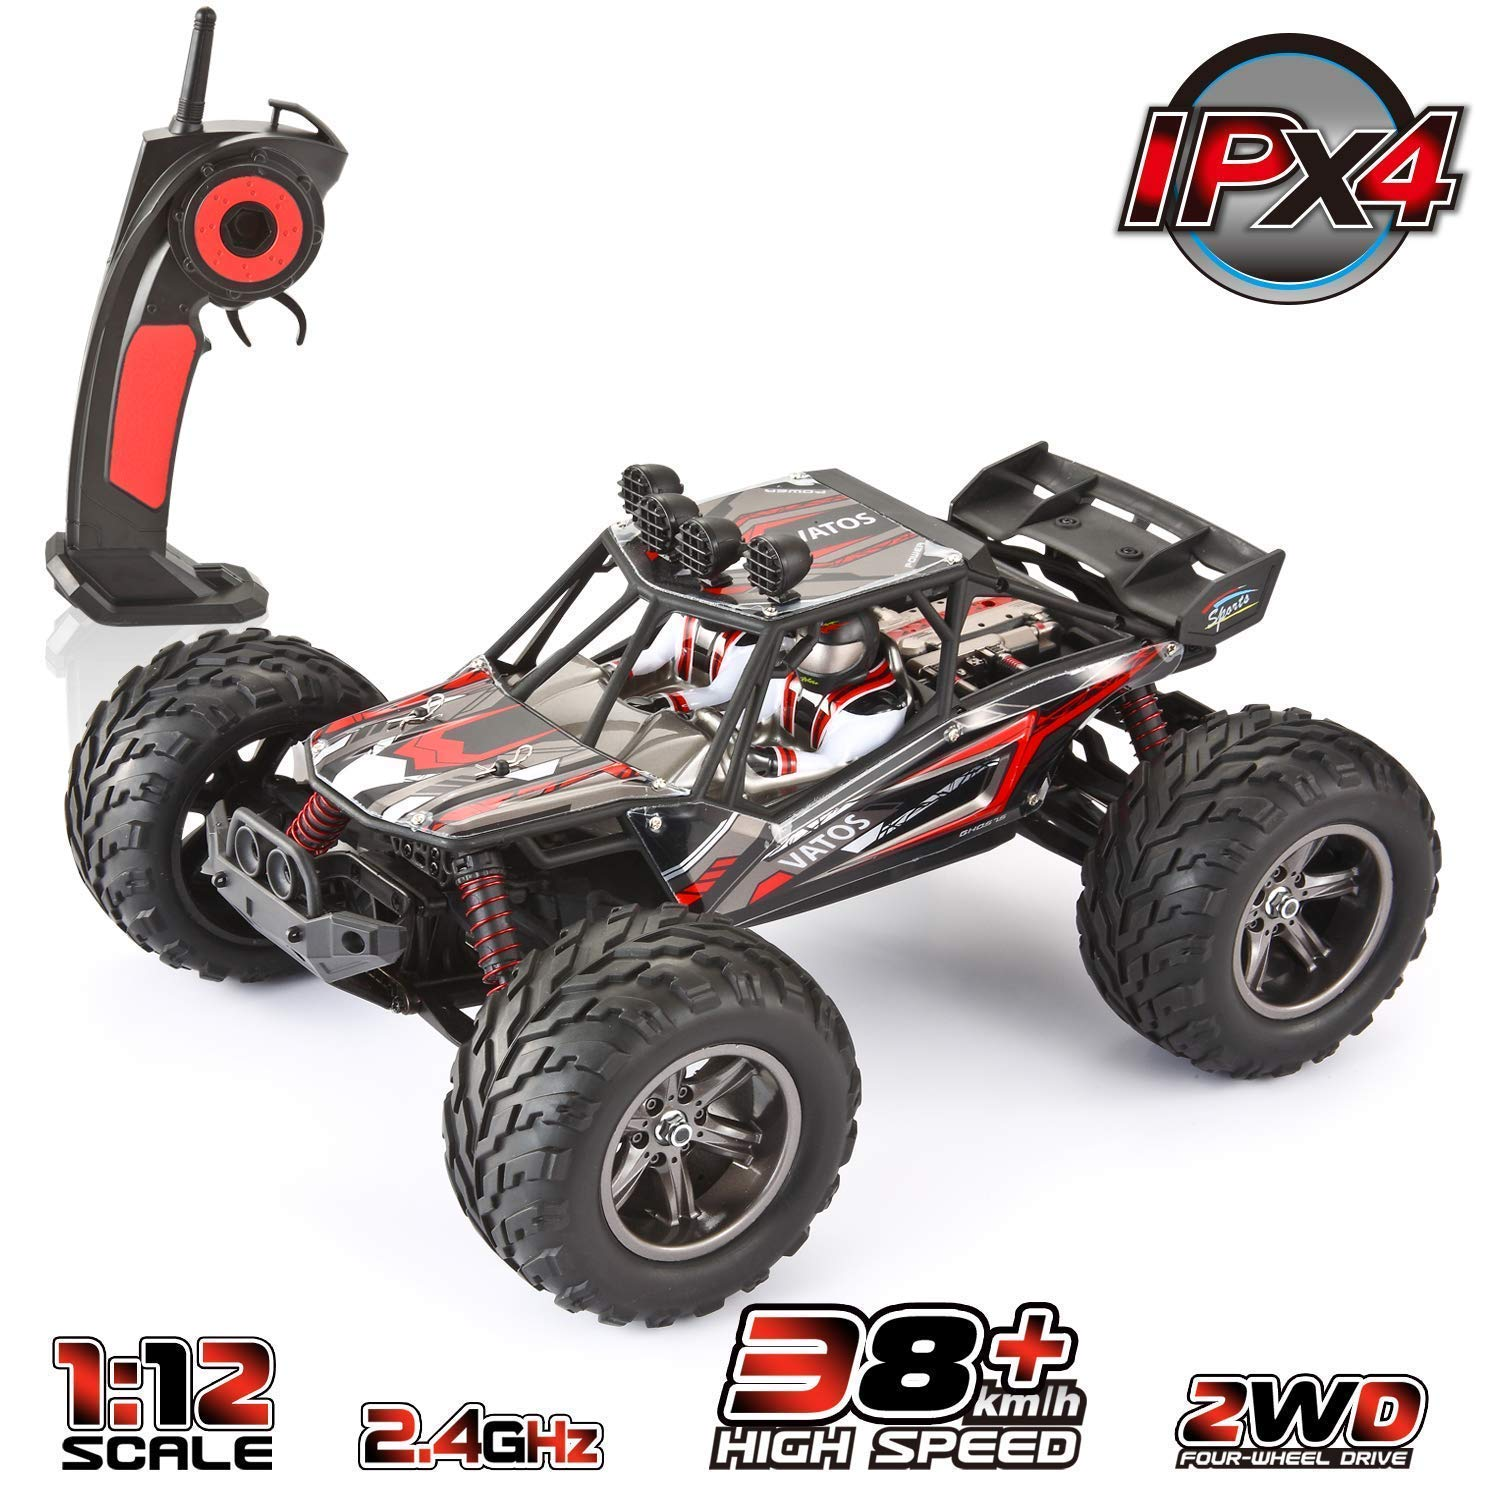 VATOS 1/12 RC Truks Off Road Remote Control Cars Rechargable 2.4GHz Fast Remote Control Car 2WD Waterproof All Terrain Remote Control Car